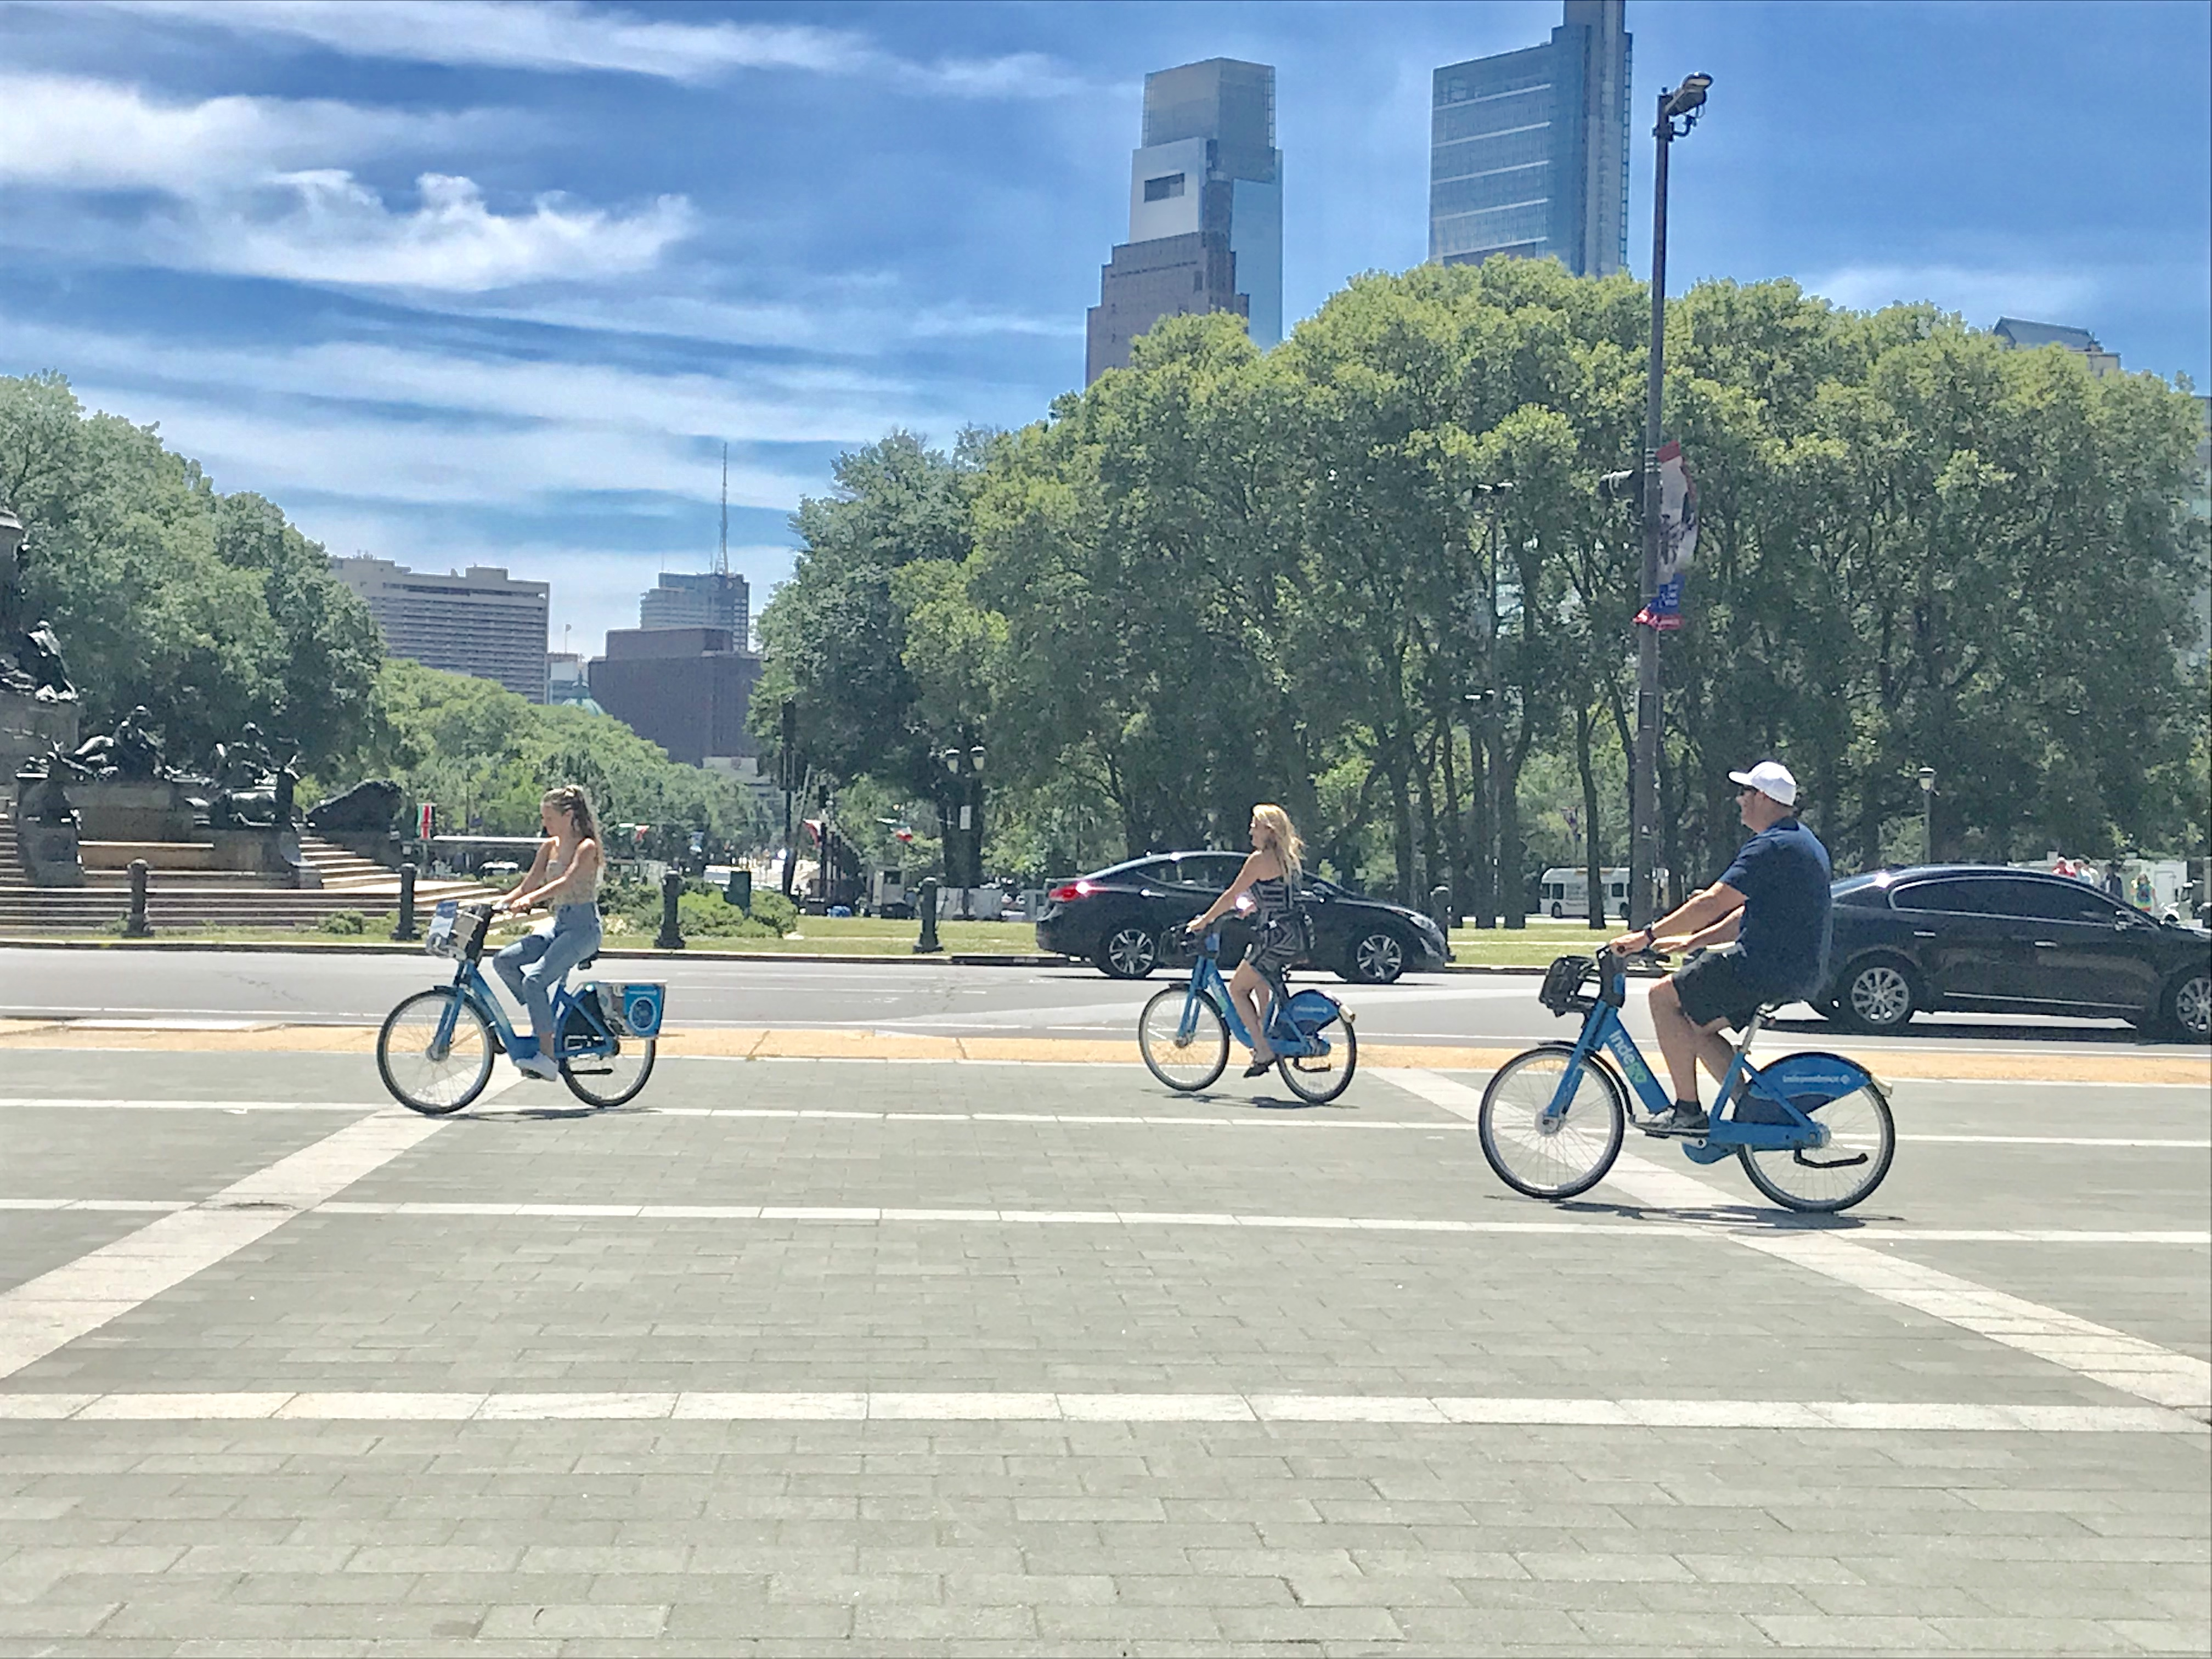 Biking in Philadelphia has a big city feel, but it's safe and family friendly.